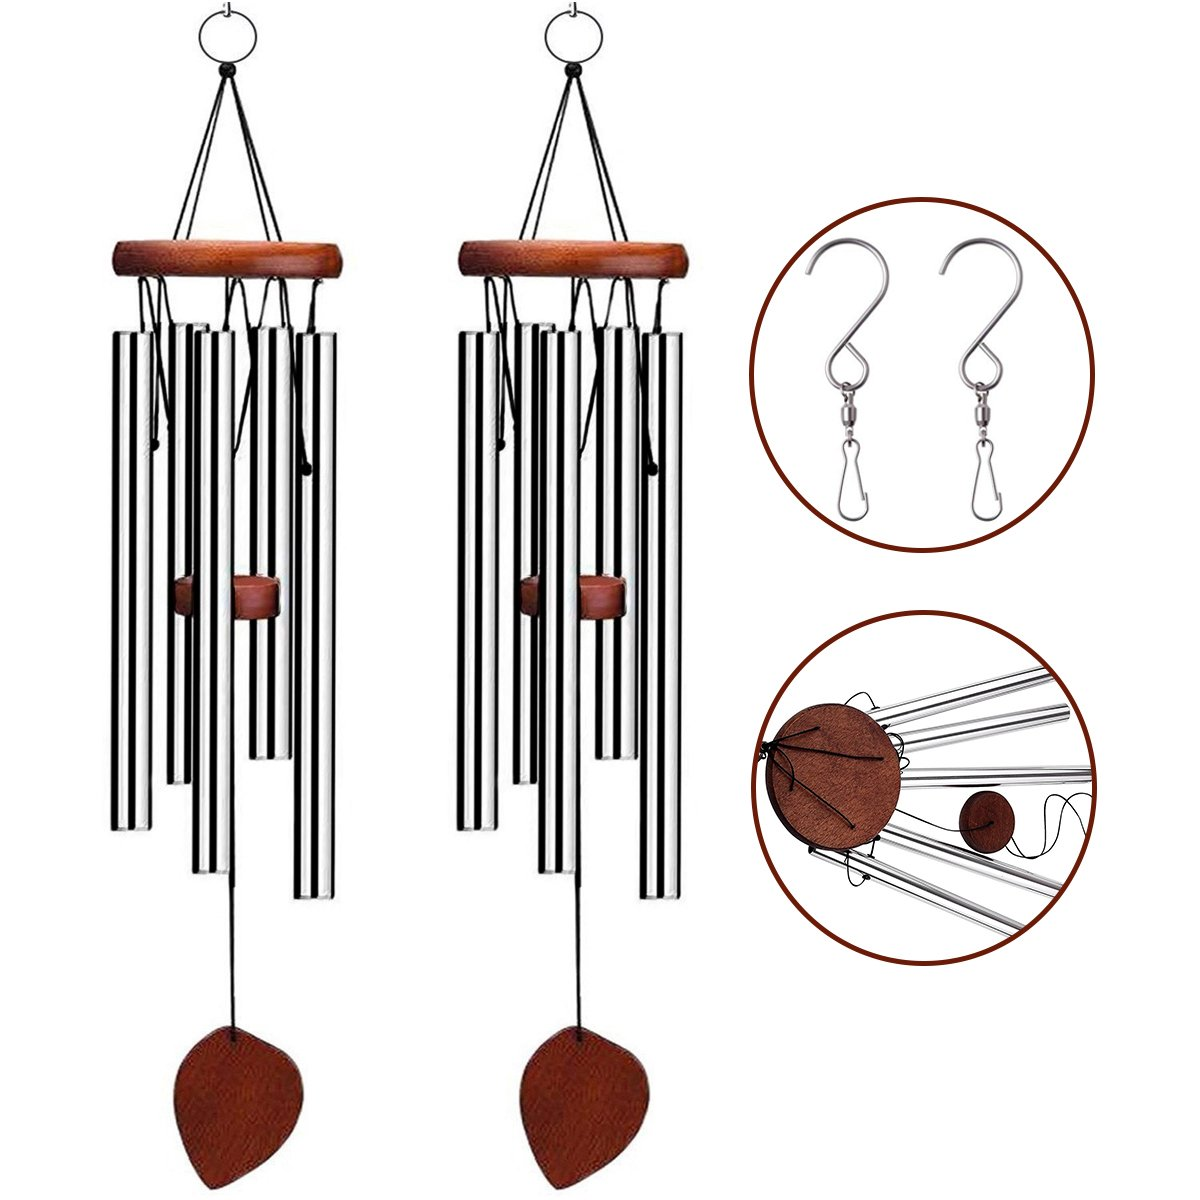 Wind Chimes Outdoor VenKoda 2 Pack Sympathy Wind Chimes Musical Amazing Grace Birthday Gifts for Friend and Family Memorial Porch Patio Home and Garden Decor Metal Large - 24 Inch